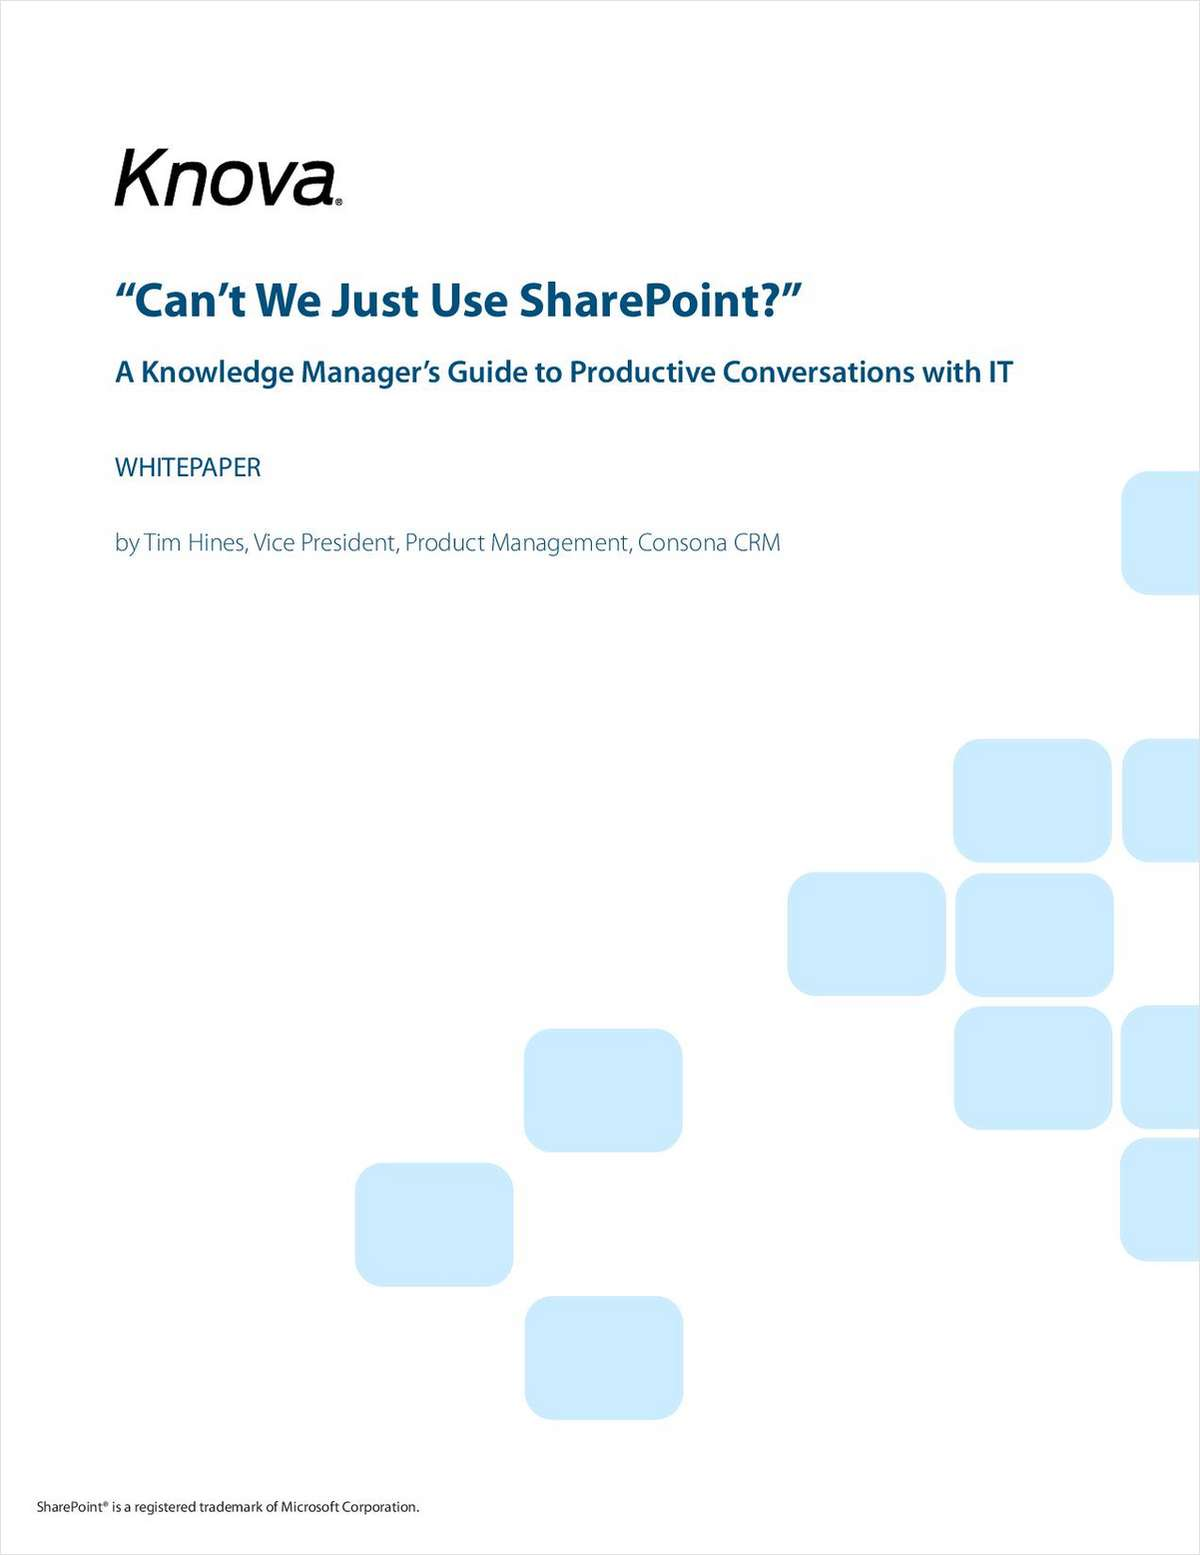 Can't We Just Use SharePoint? A Knowledge Manager's Guide to Productive Conversations with IT